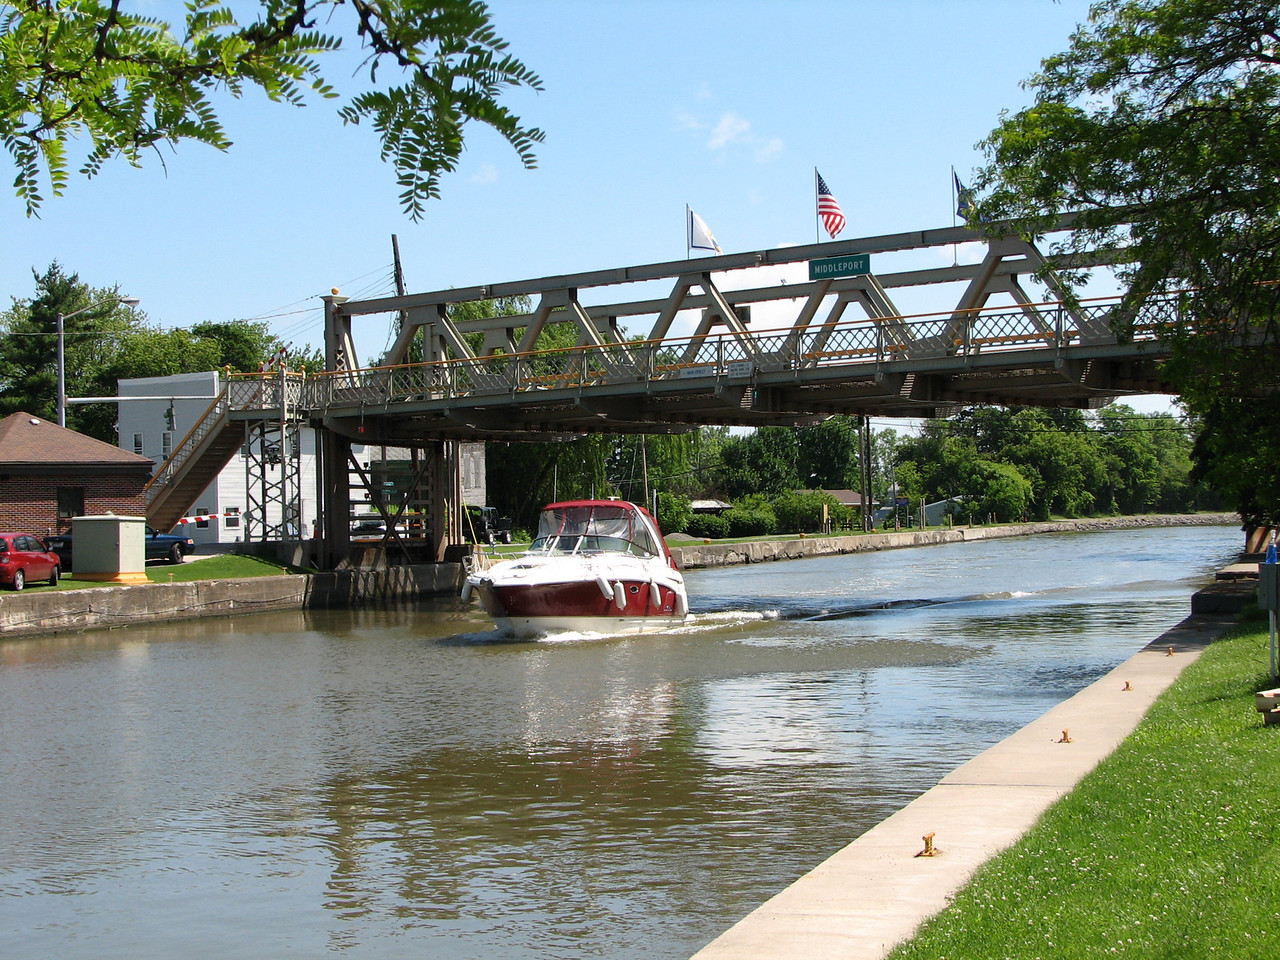 Generally in towns, the canal is very close to street level.  Therefore, lift bridges are needed to let the boats through.  The boater calls the bridge tender on channel 13 and requests a lift.  Usually by the time the boat approaches, the traffic gates are down and the bridge is nearly up.